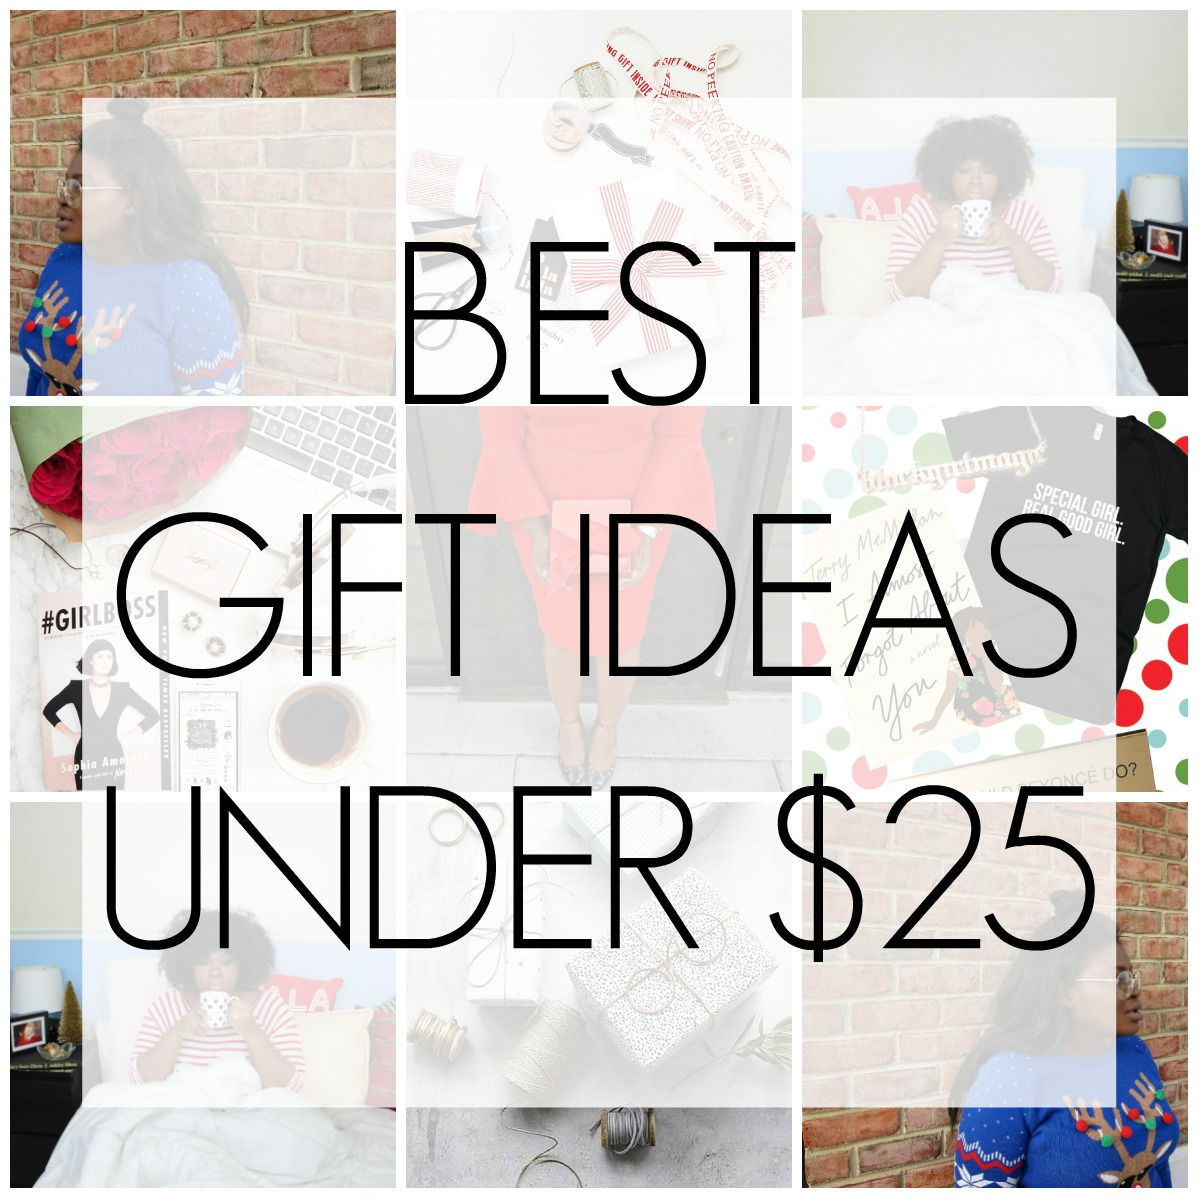 BEST BUDGET GIFTS IDEAS UNDER $25 FOR HIM & HER